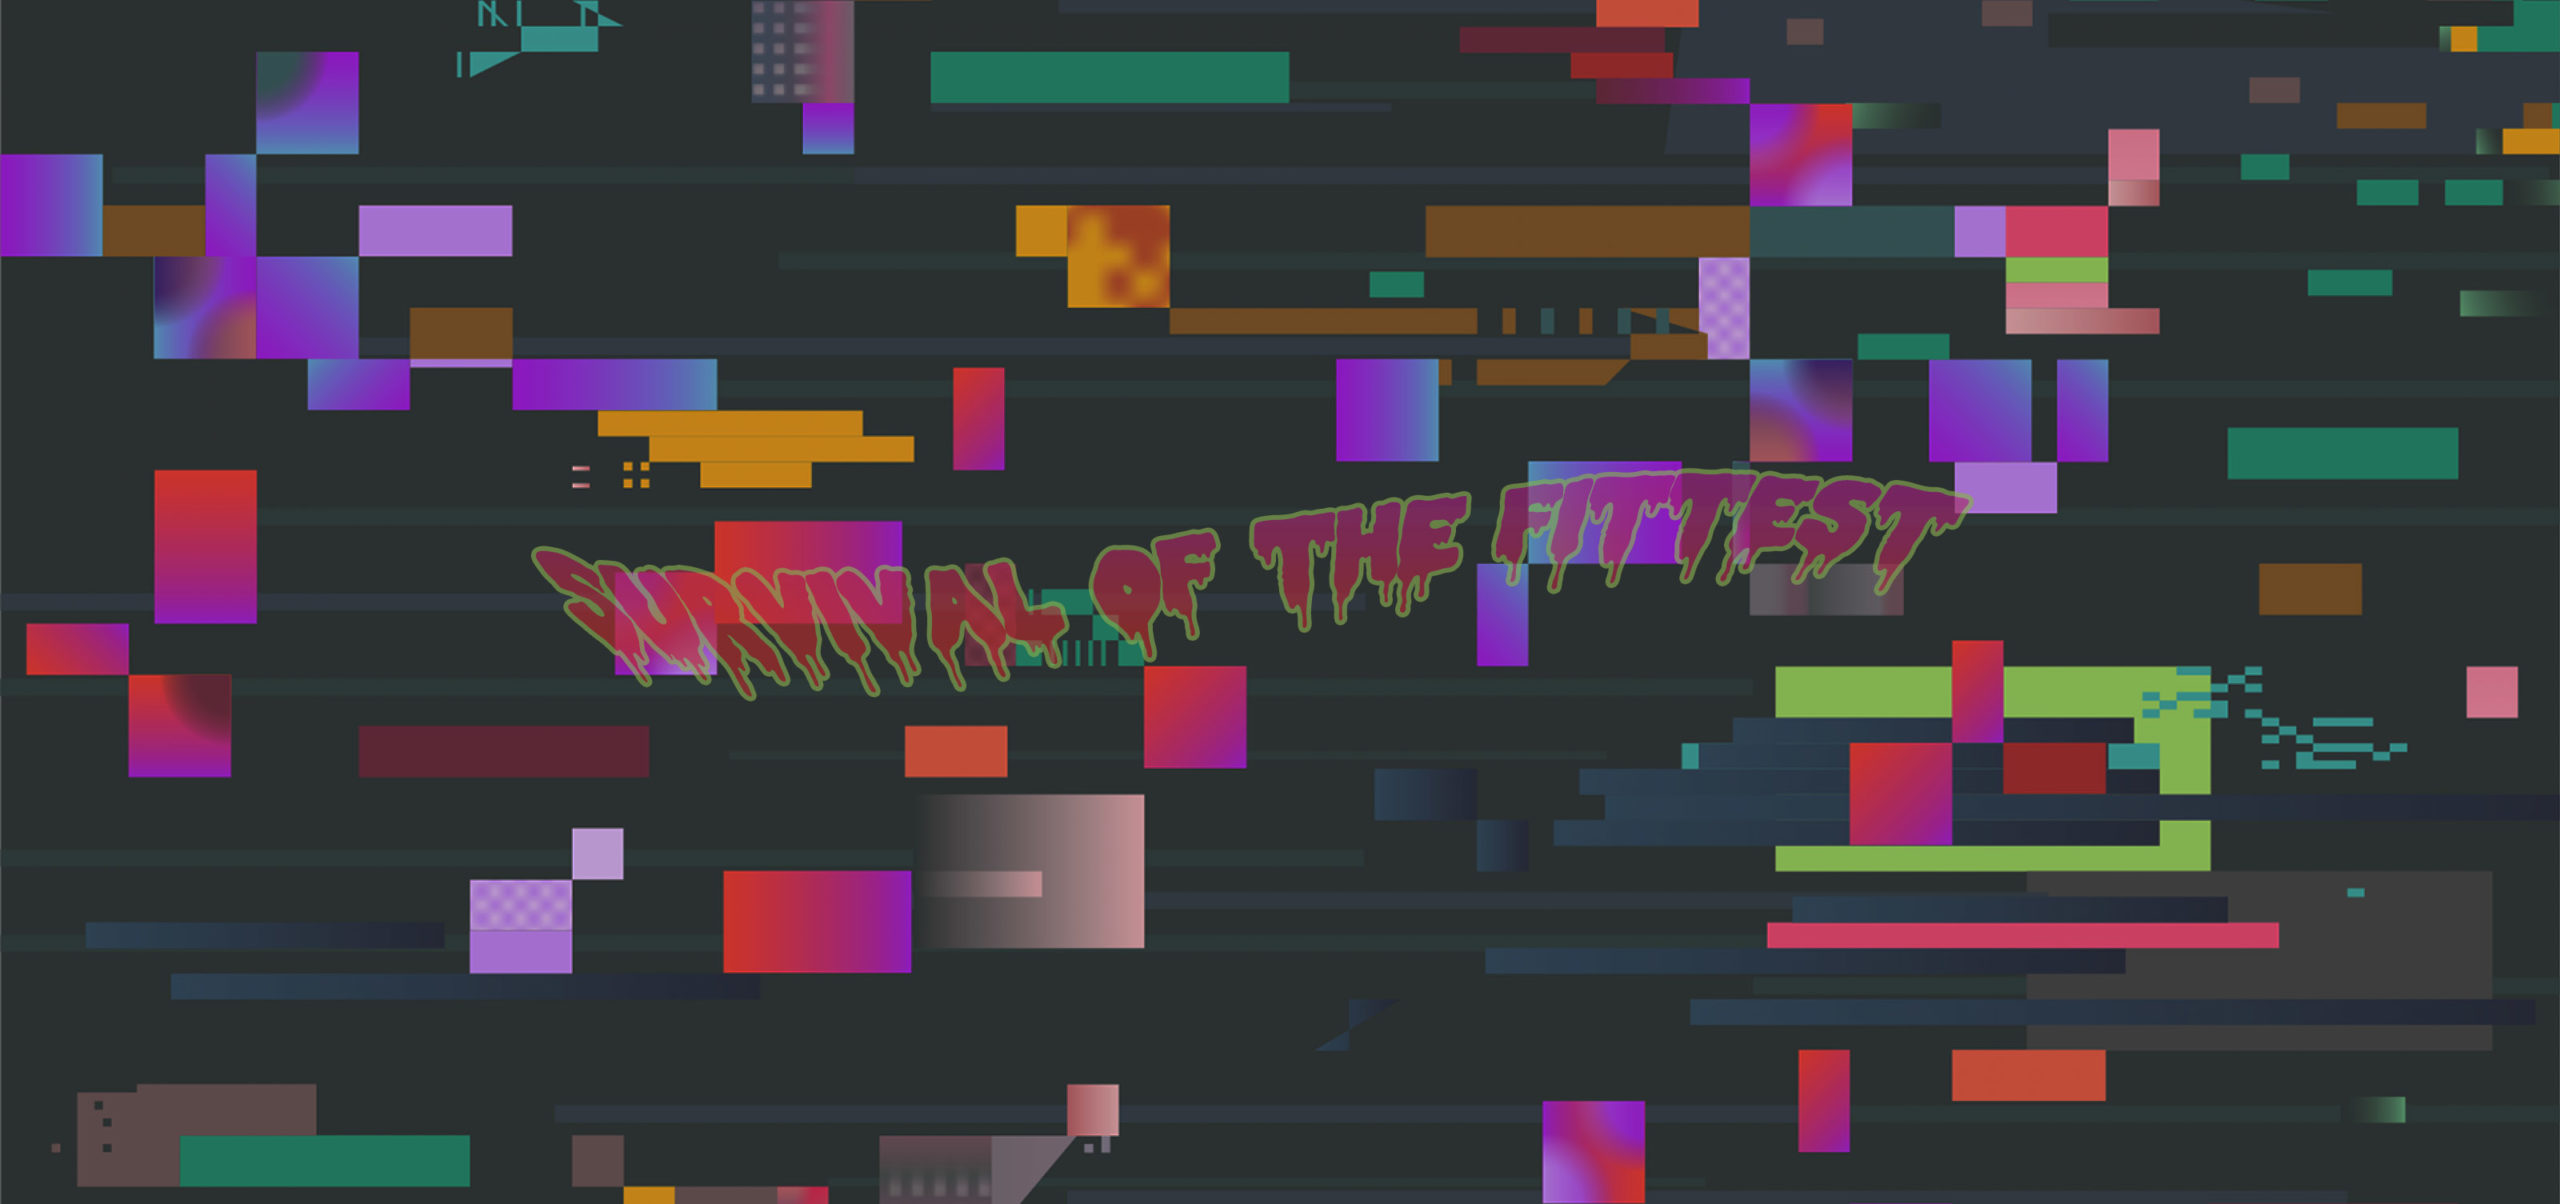 A matted dark grey background with various different sized rectangle and colours (light grey, red, purple, orange, yellow, brown, lime green, pink, dark green and dark blue) Overlaid is the word 'Survival of the Fittest' the outline of the words are bright green, the colour within is a gradient (bright pink to bright red) The font has a drip effect towards the bottom